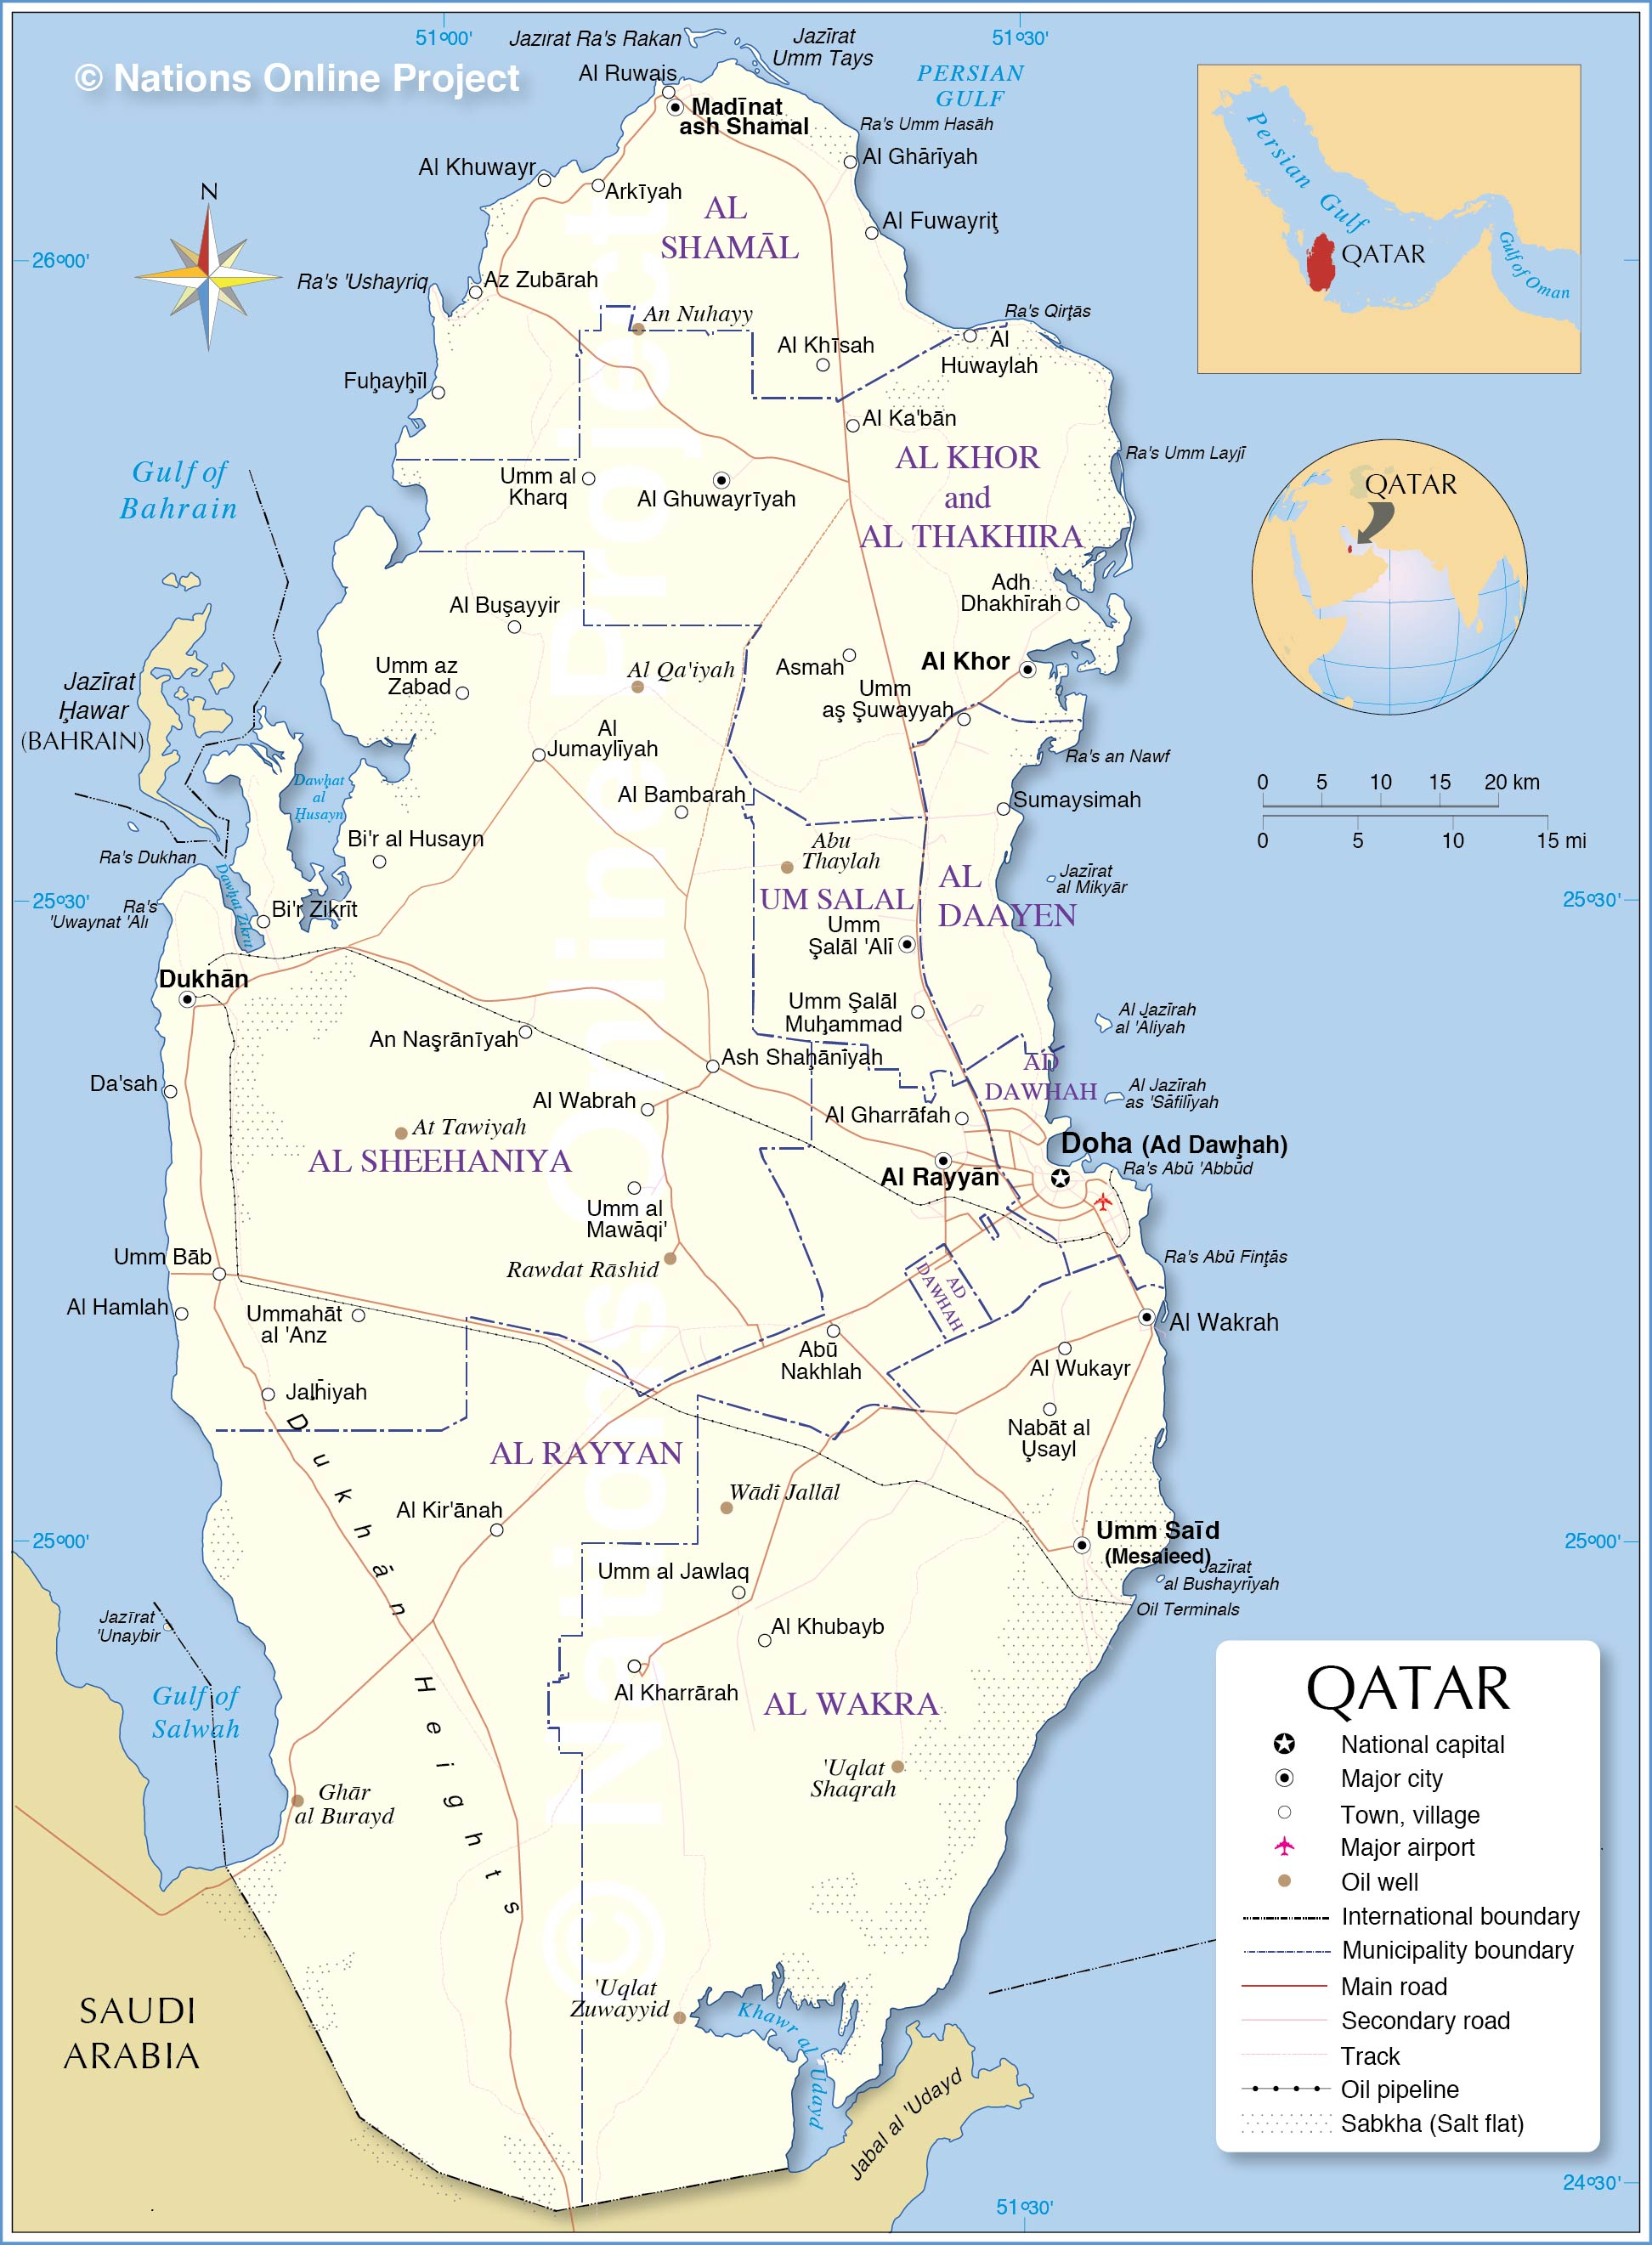 Political Map of Qatar - Nations Online Project on alexandria area map, kyoto area map, rotterdam area map, cairo area map, qatar area map, hangzhou area map, narita area map, hyderabad area map, berlin area map, beijing area map, baghdad area map, kowloon area map, warsaw area map, bahrain area map, lilongwe area map, phnom penh area map, macau area map, mosul area map, kuala lumpur area map, bilbao area map,